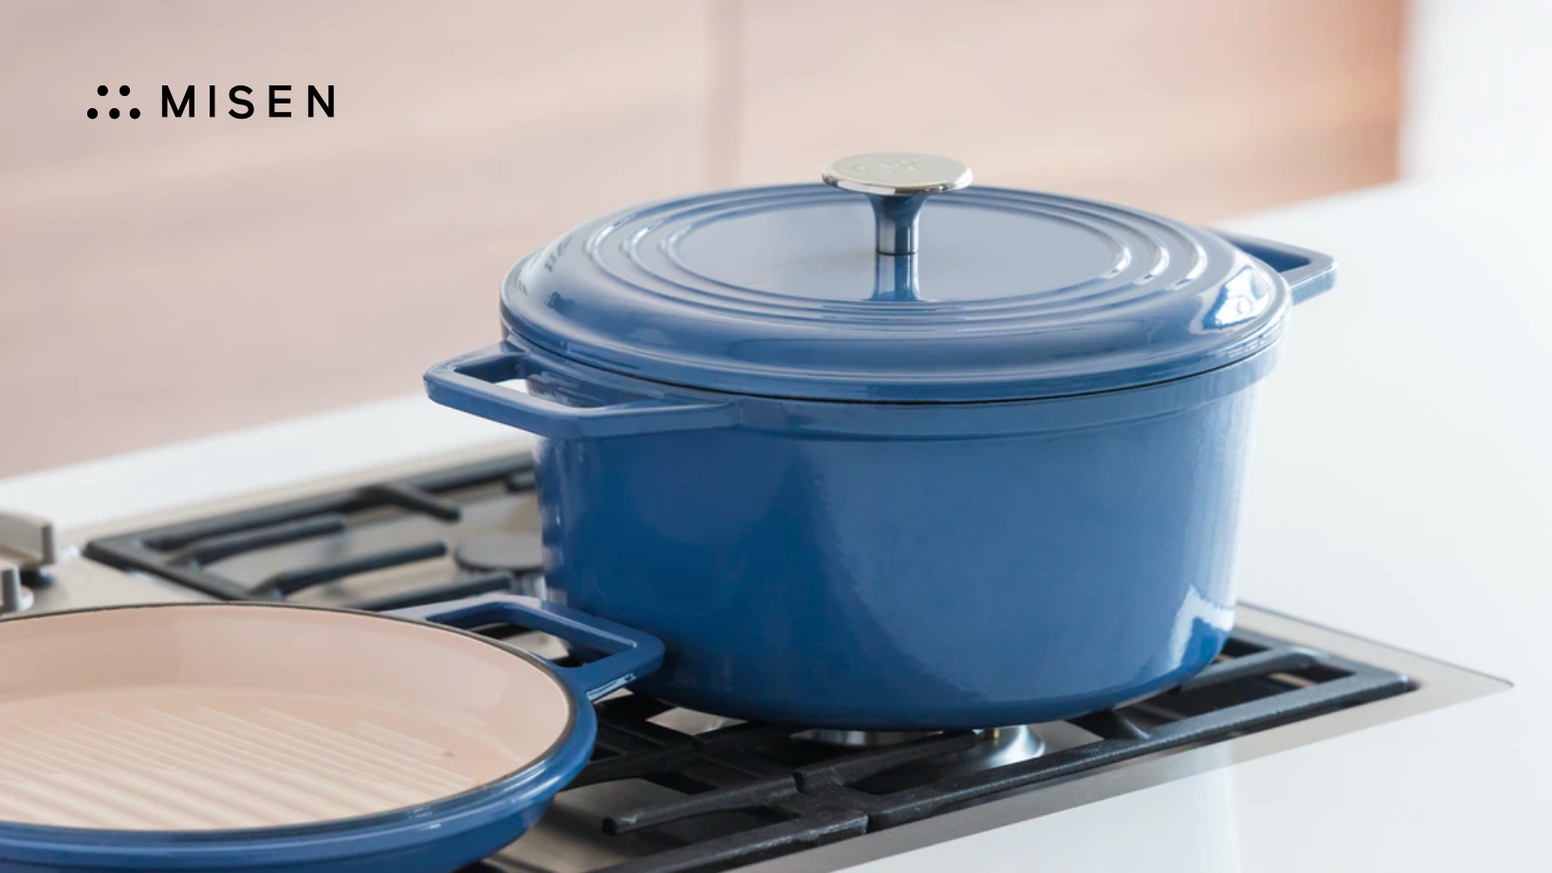 A cookware classic improved. Incredibly versatile, lasts forever, sold at an honest price.